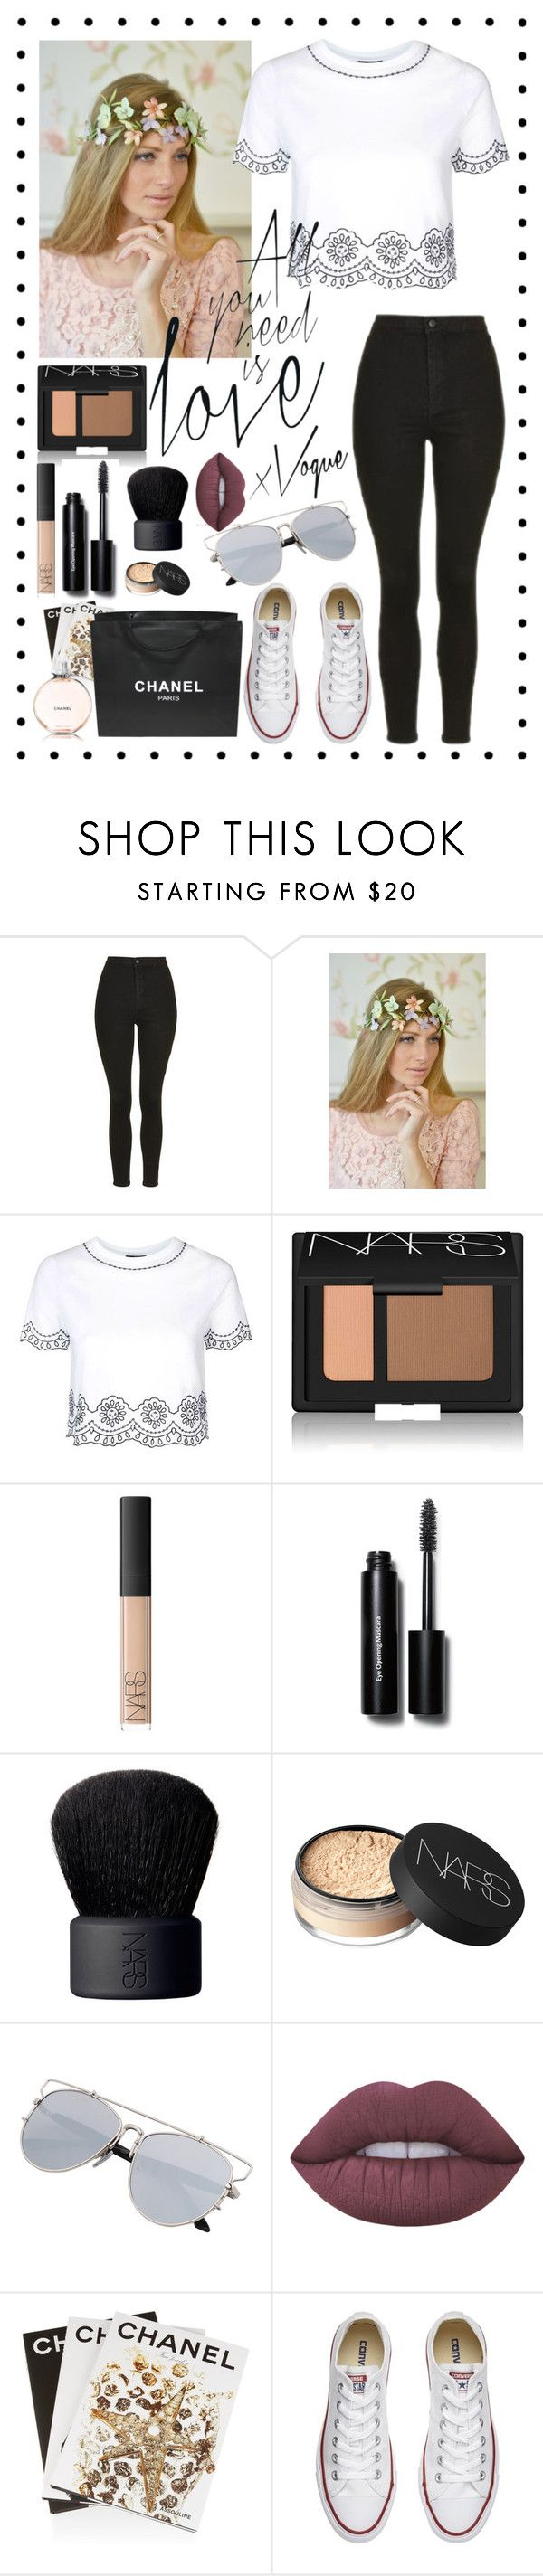 """All you need is love x"" by rhiannonpsayer on Polyvore featuring Topshop, NARS Cosmetics, Bobbi Brown Cosmetics, Lime Crime, Assouline Publishing, Converse and Chanel"